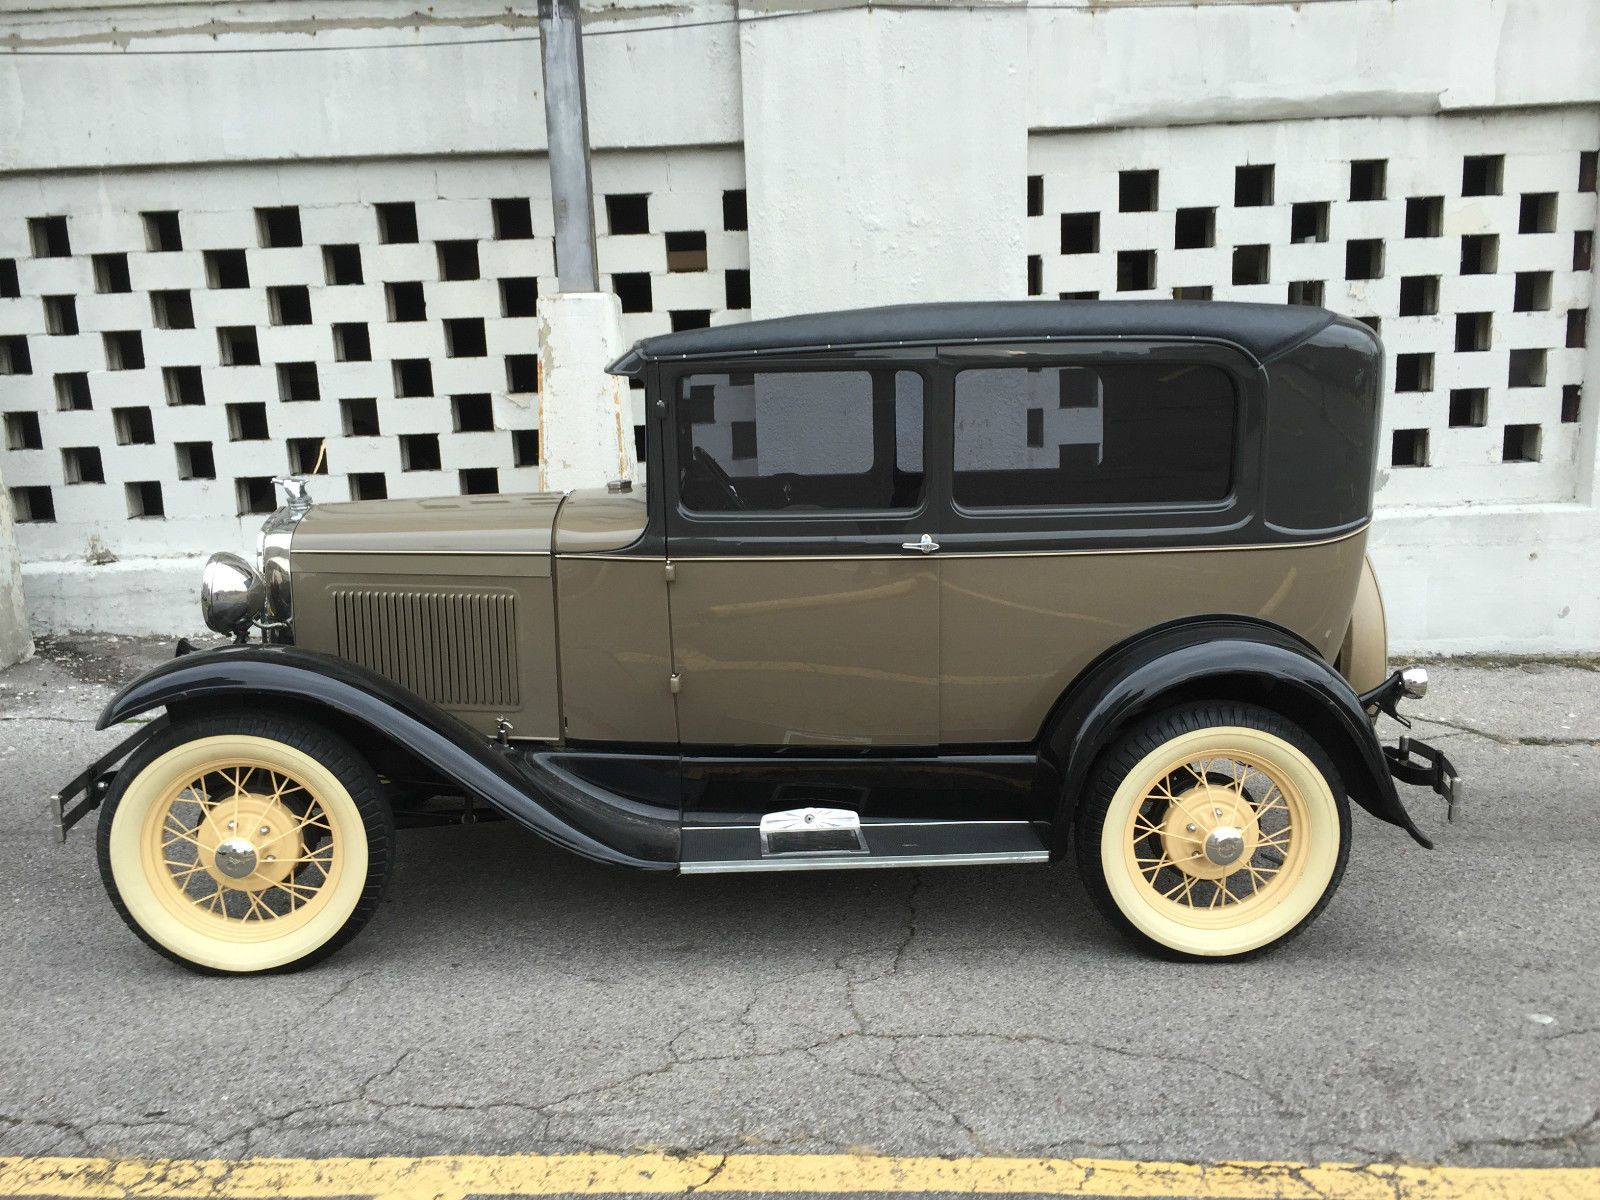 1930 Ford Model A Tudor Sedan For Sale Sedan Ford Models Ford Motor Company